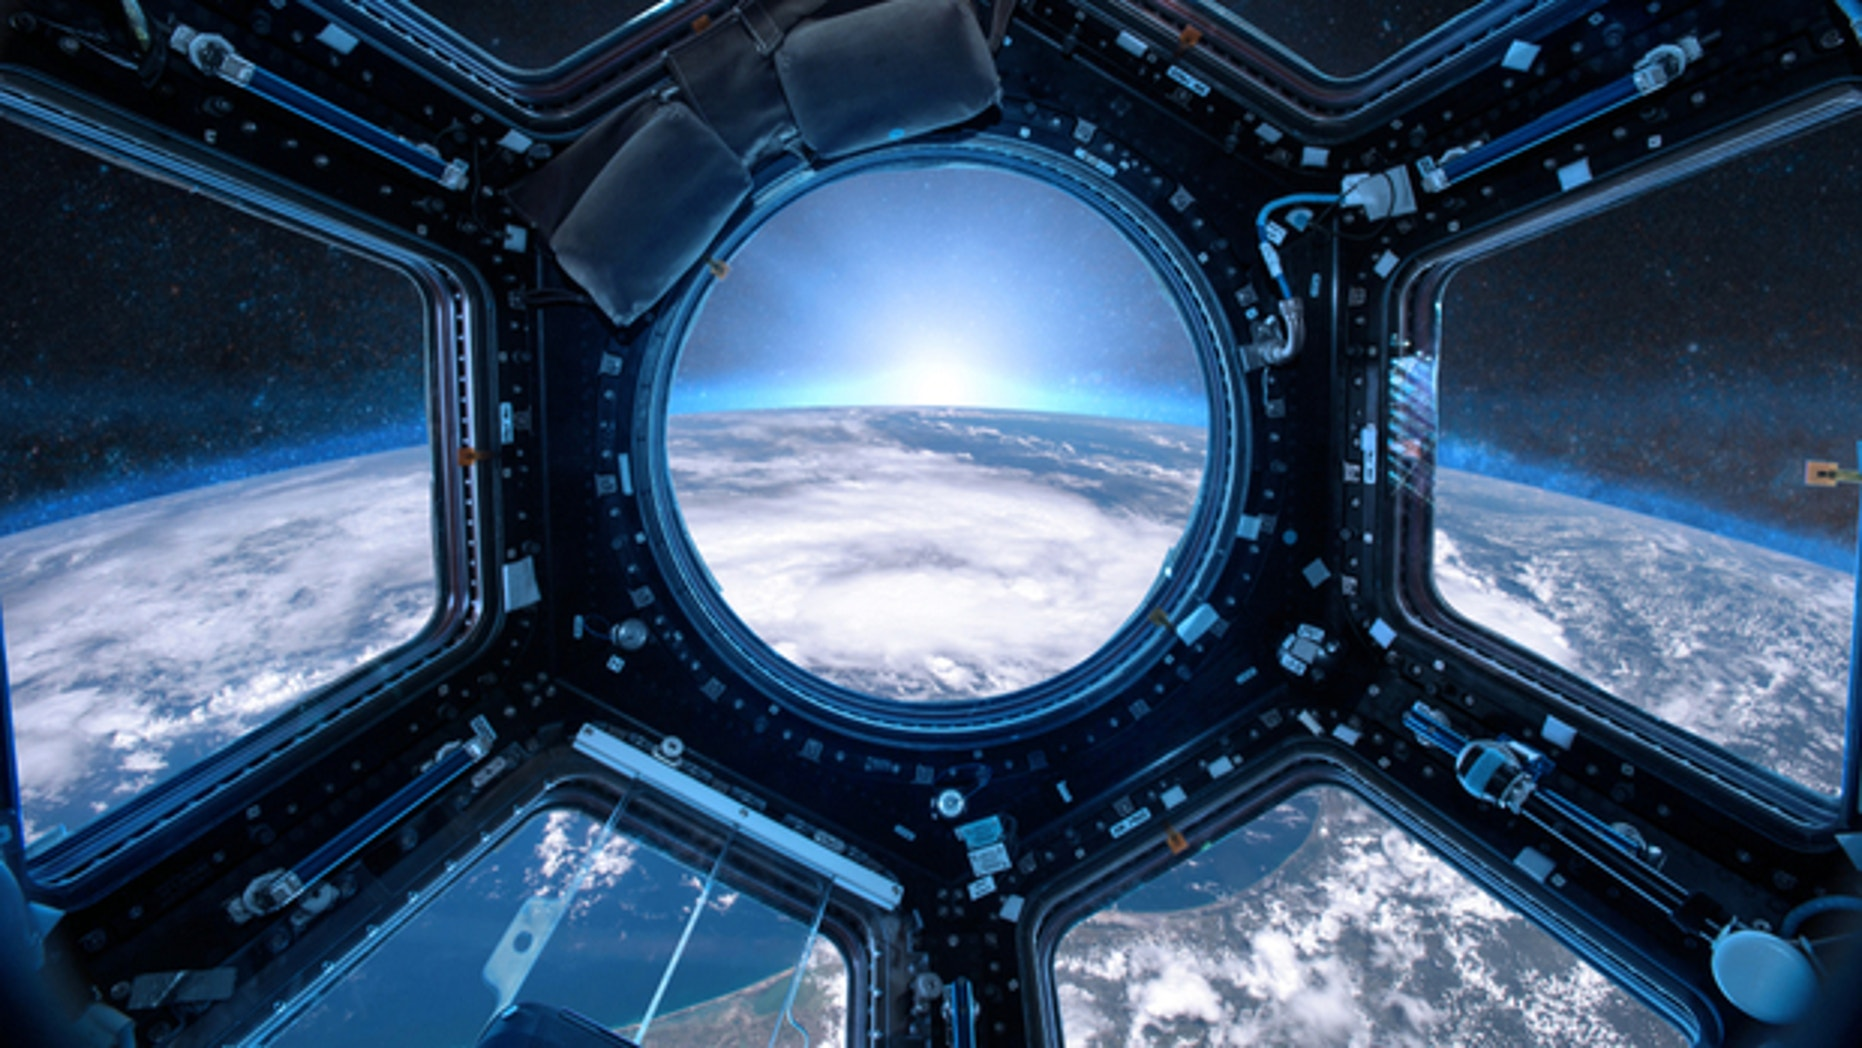 There is toxic fungus living in space. But no one knows whether it poses any threat to human health yet.